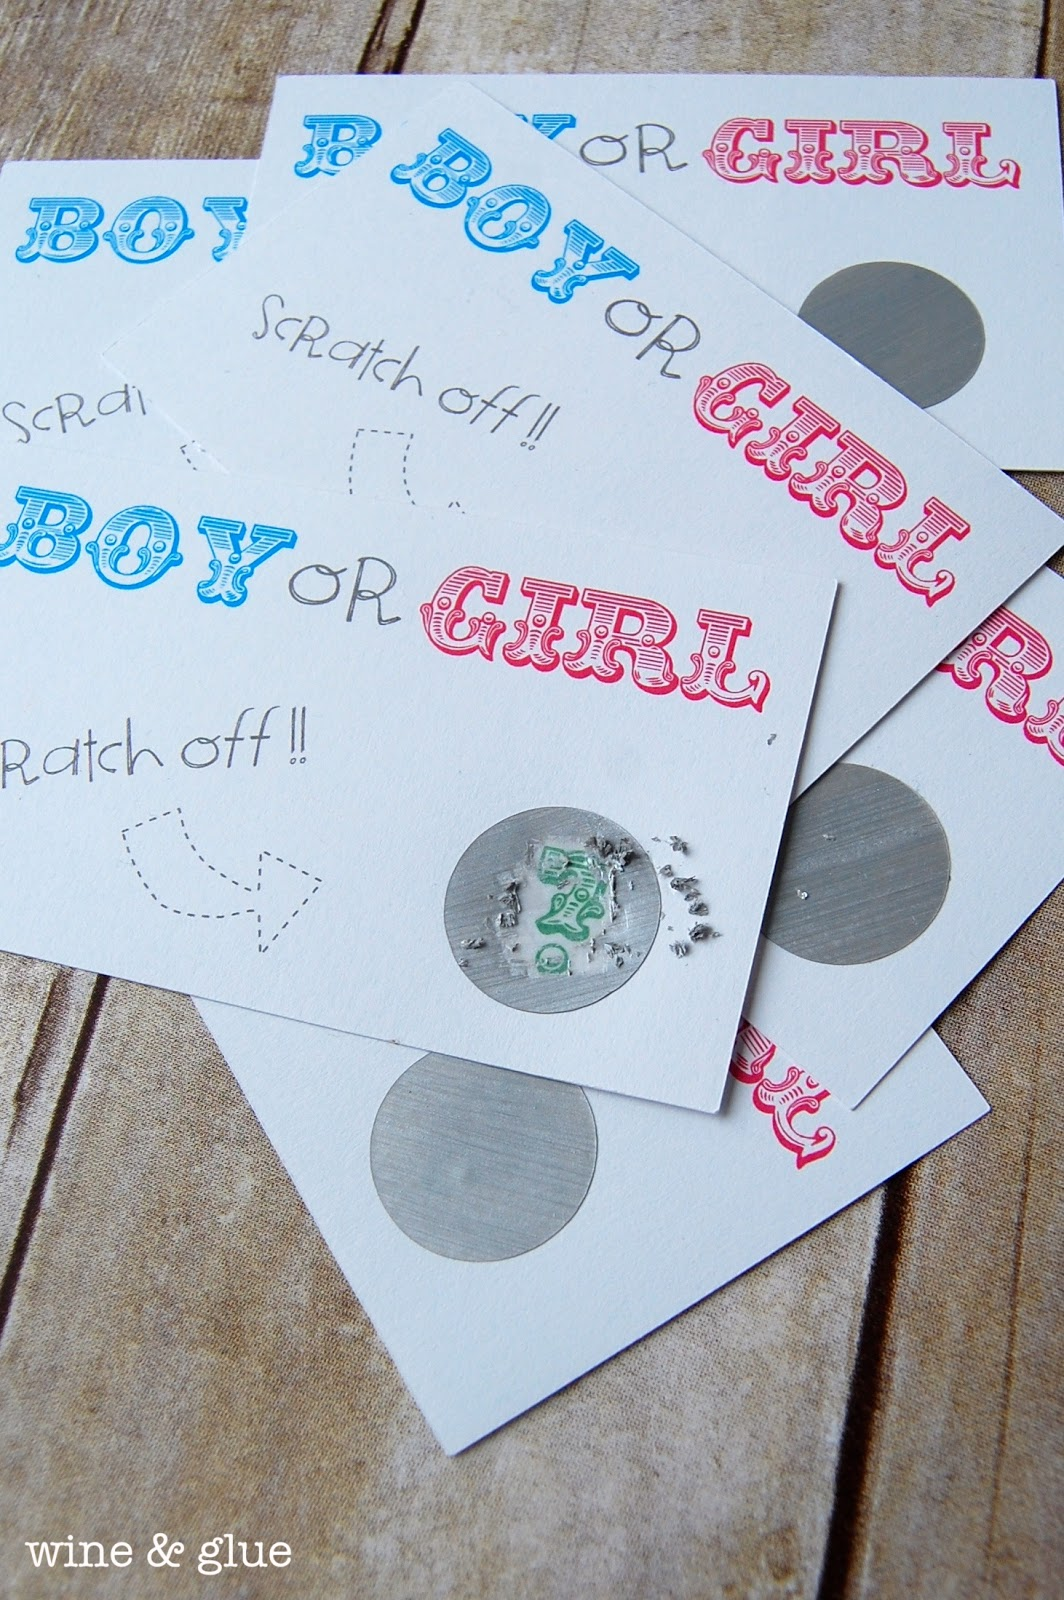 Gender Reveal Party Idea - Wine & Glue